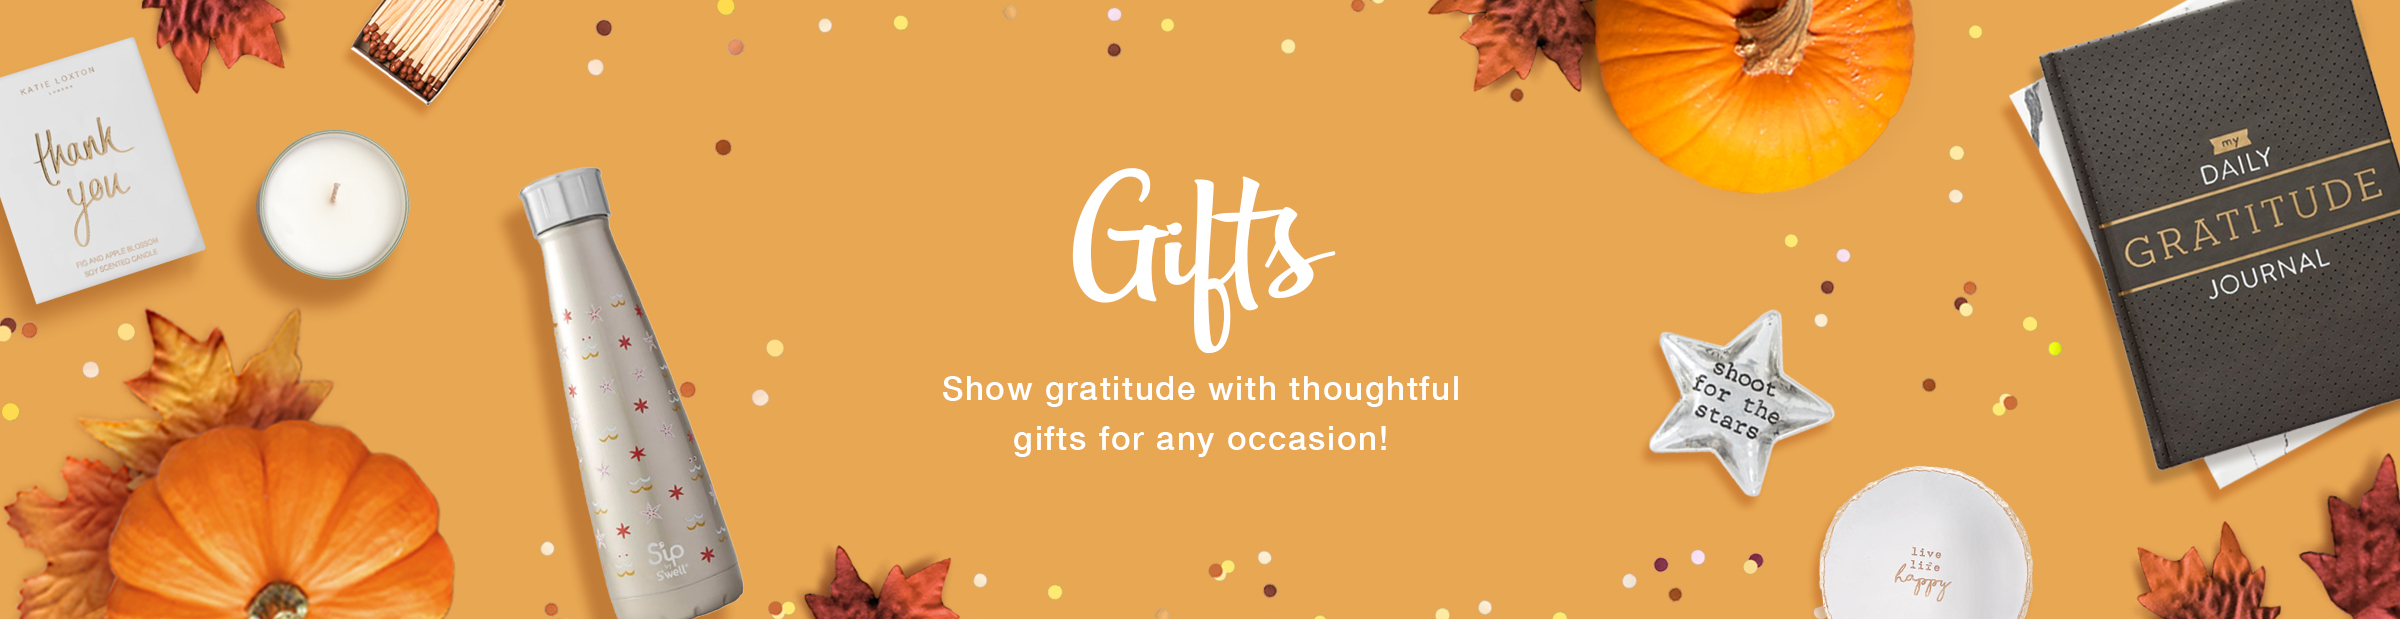 Gifts and Gift Ideas